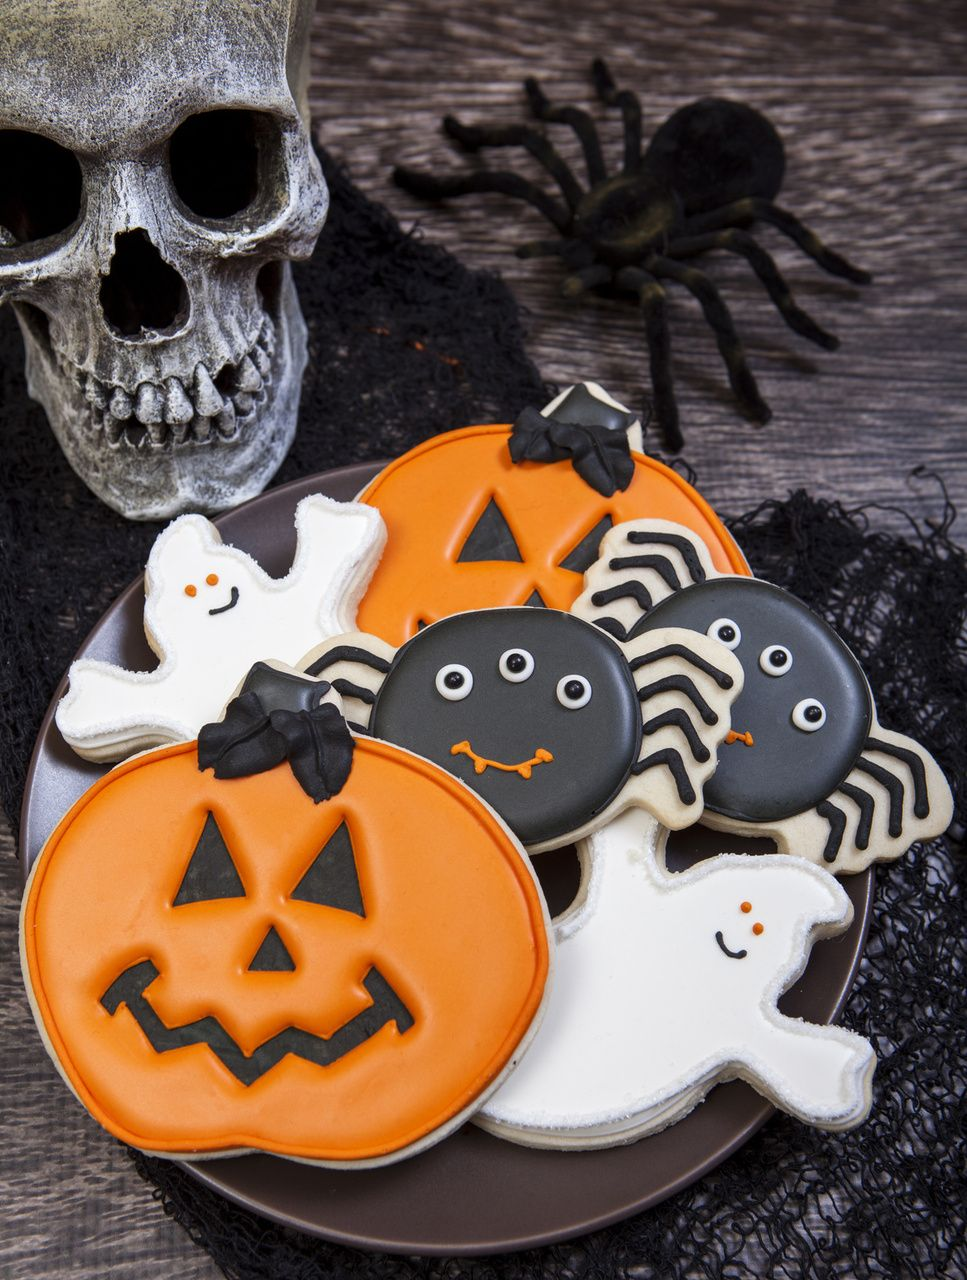 Spooky Cookie Halloween Cookie Decorations Discover more ideas - Decorating For Halloween